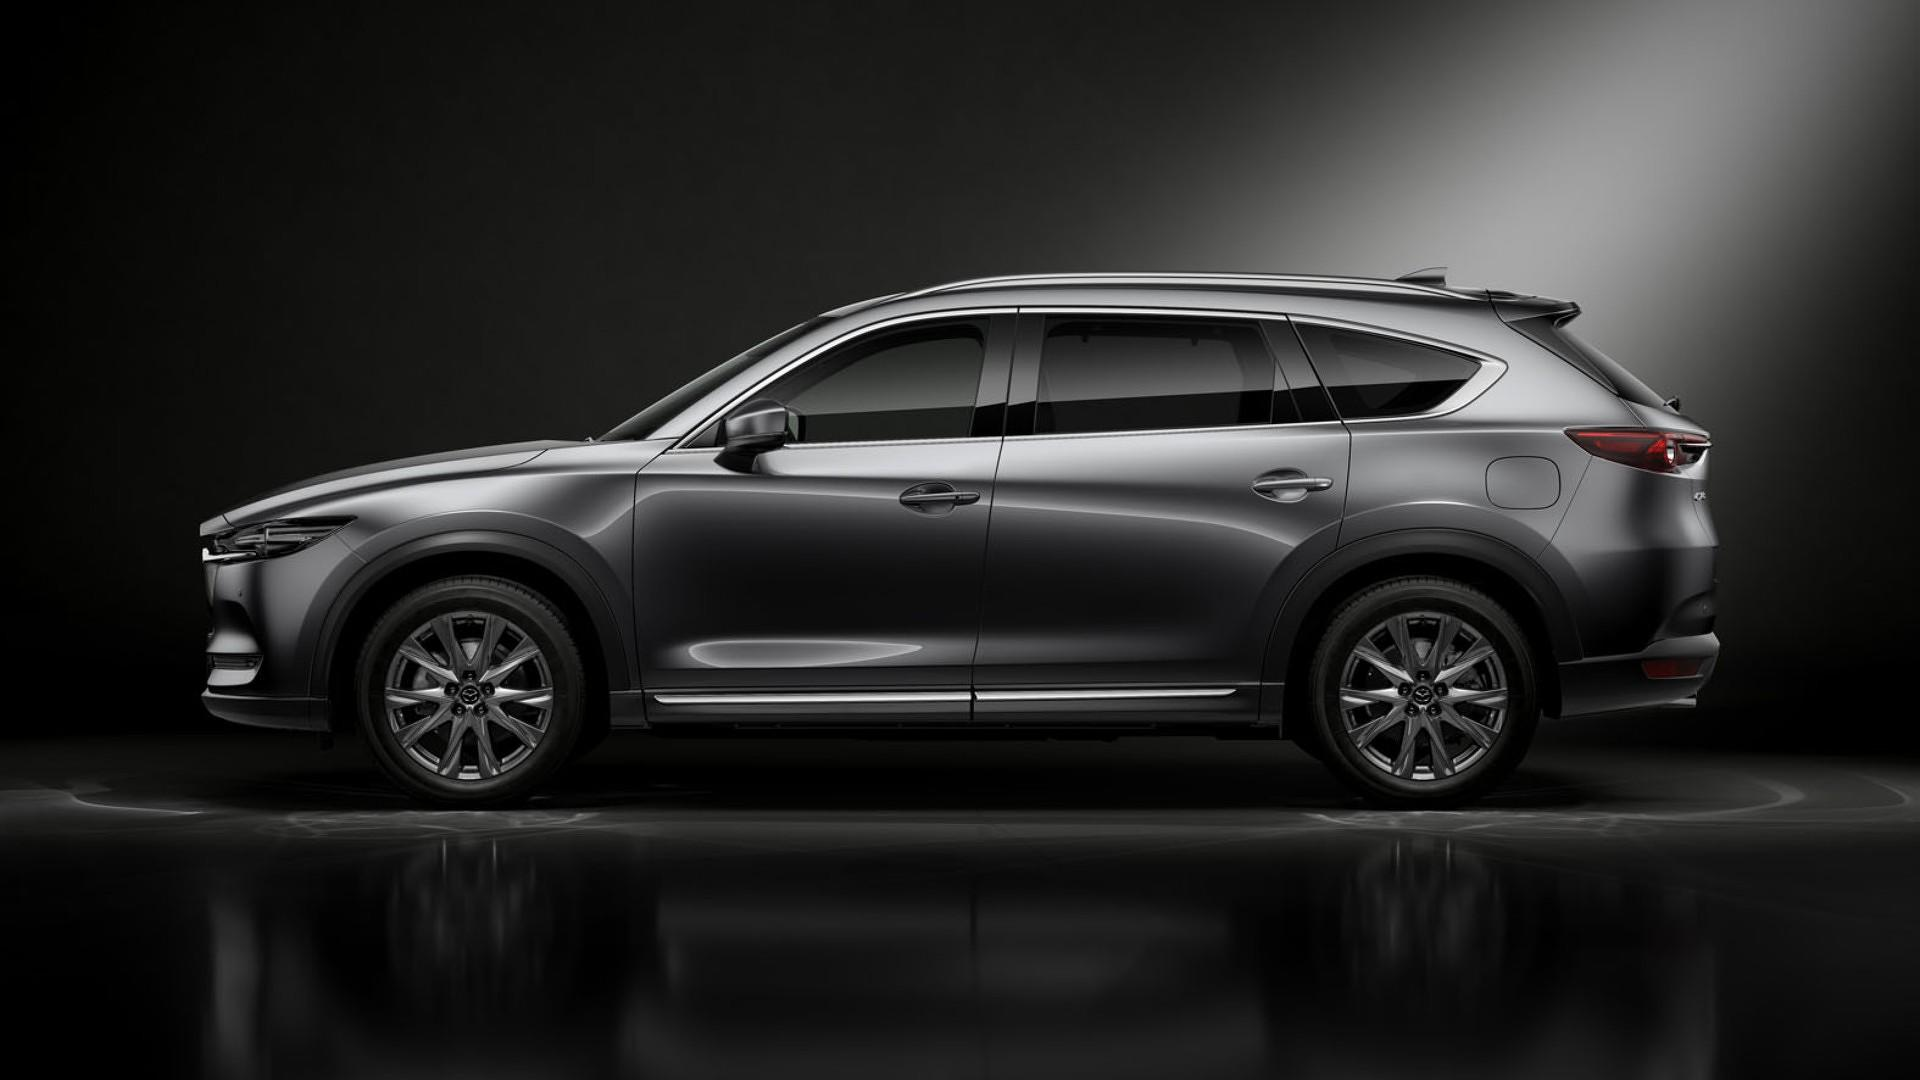 2021 Mazda SUV Will Be Made In The U.S. - autoevolution